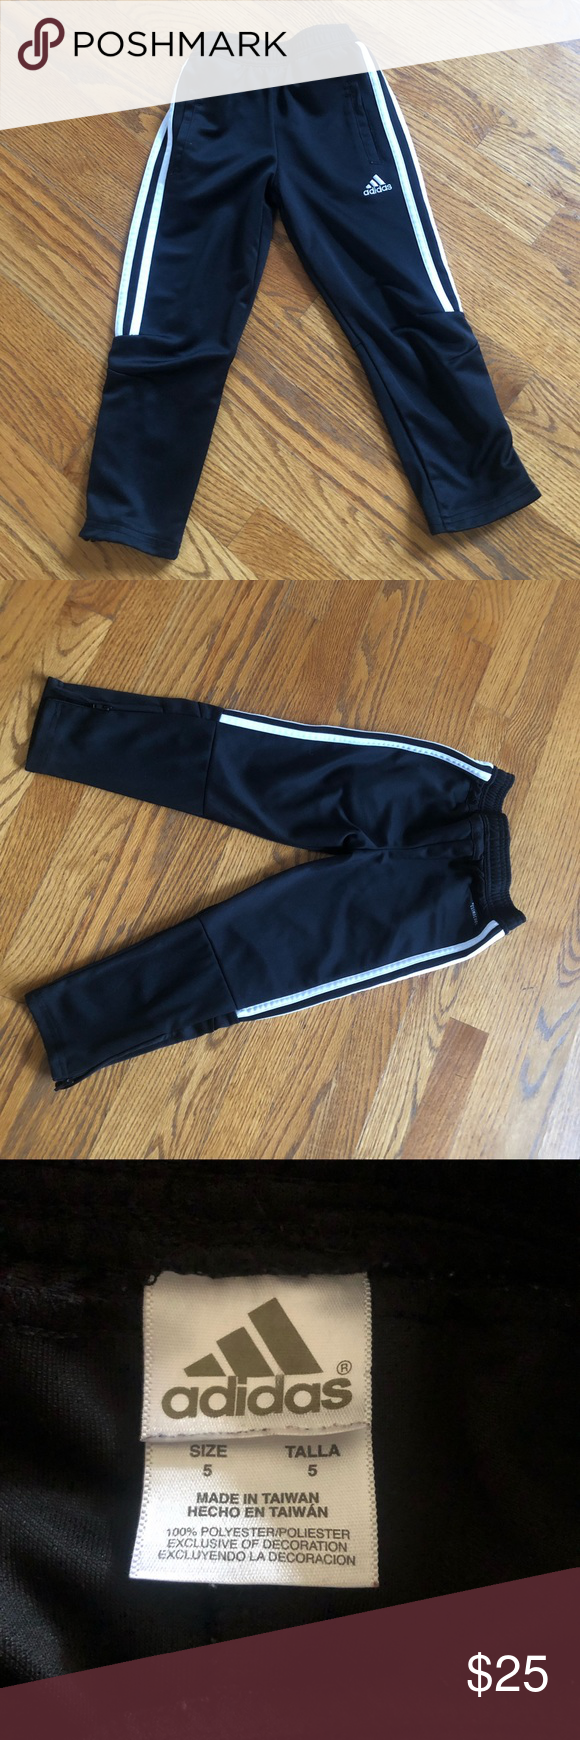 Adidas boys size 5 track pants with